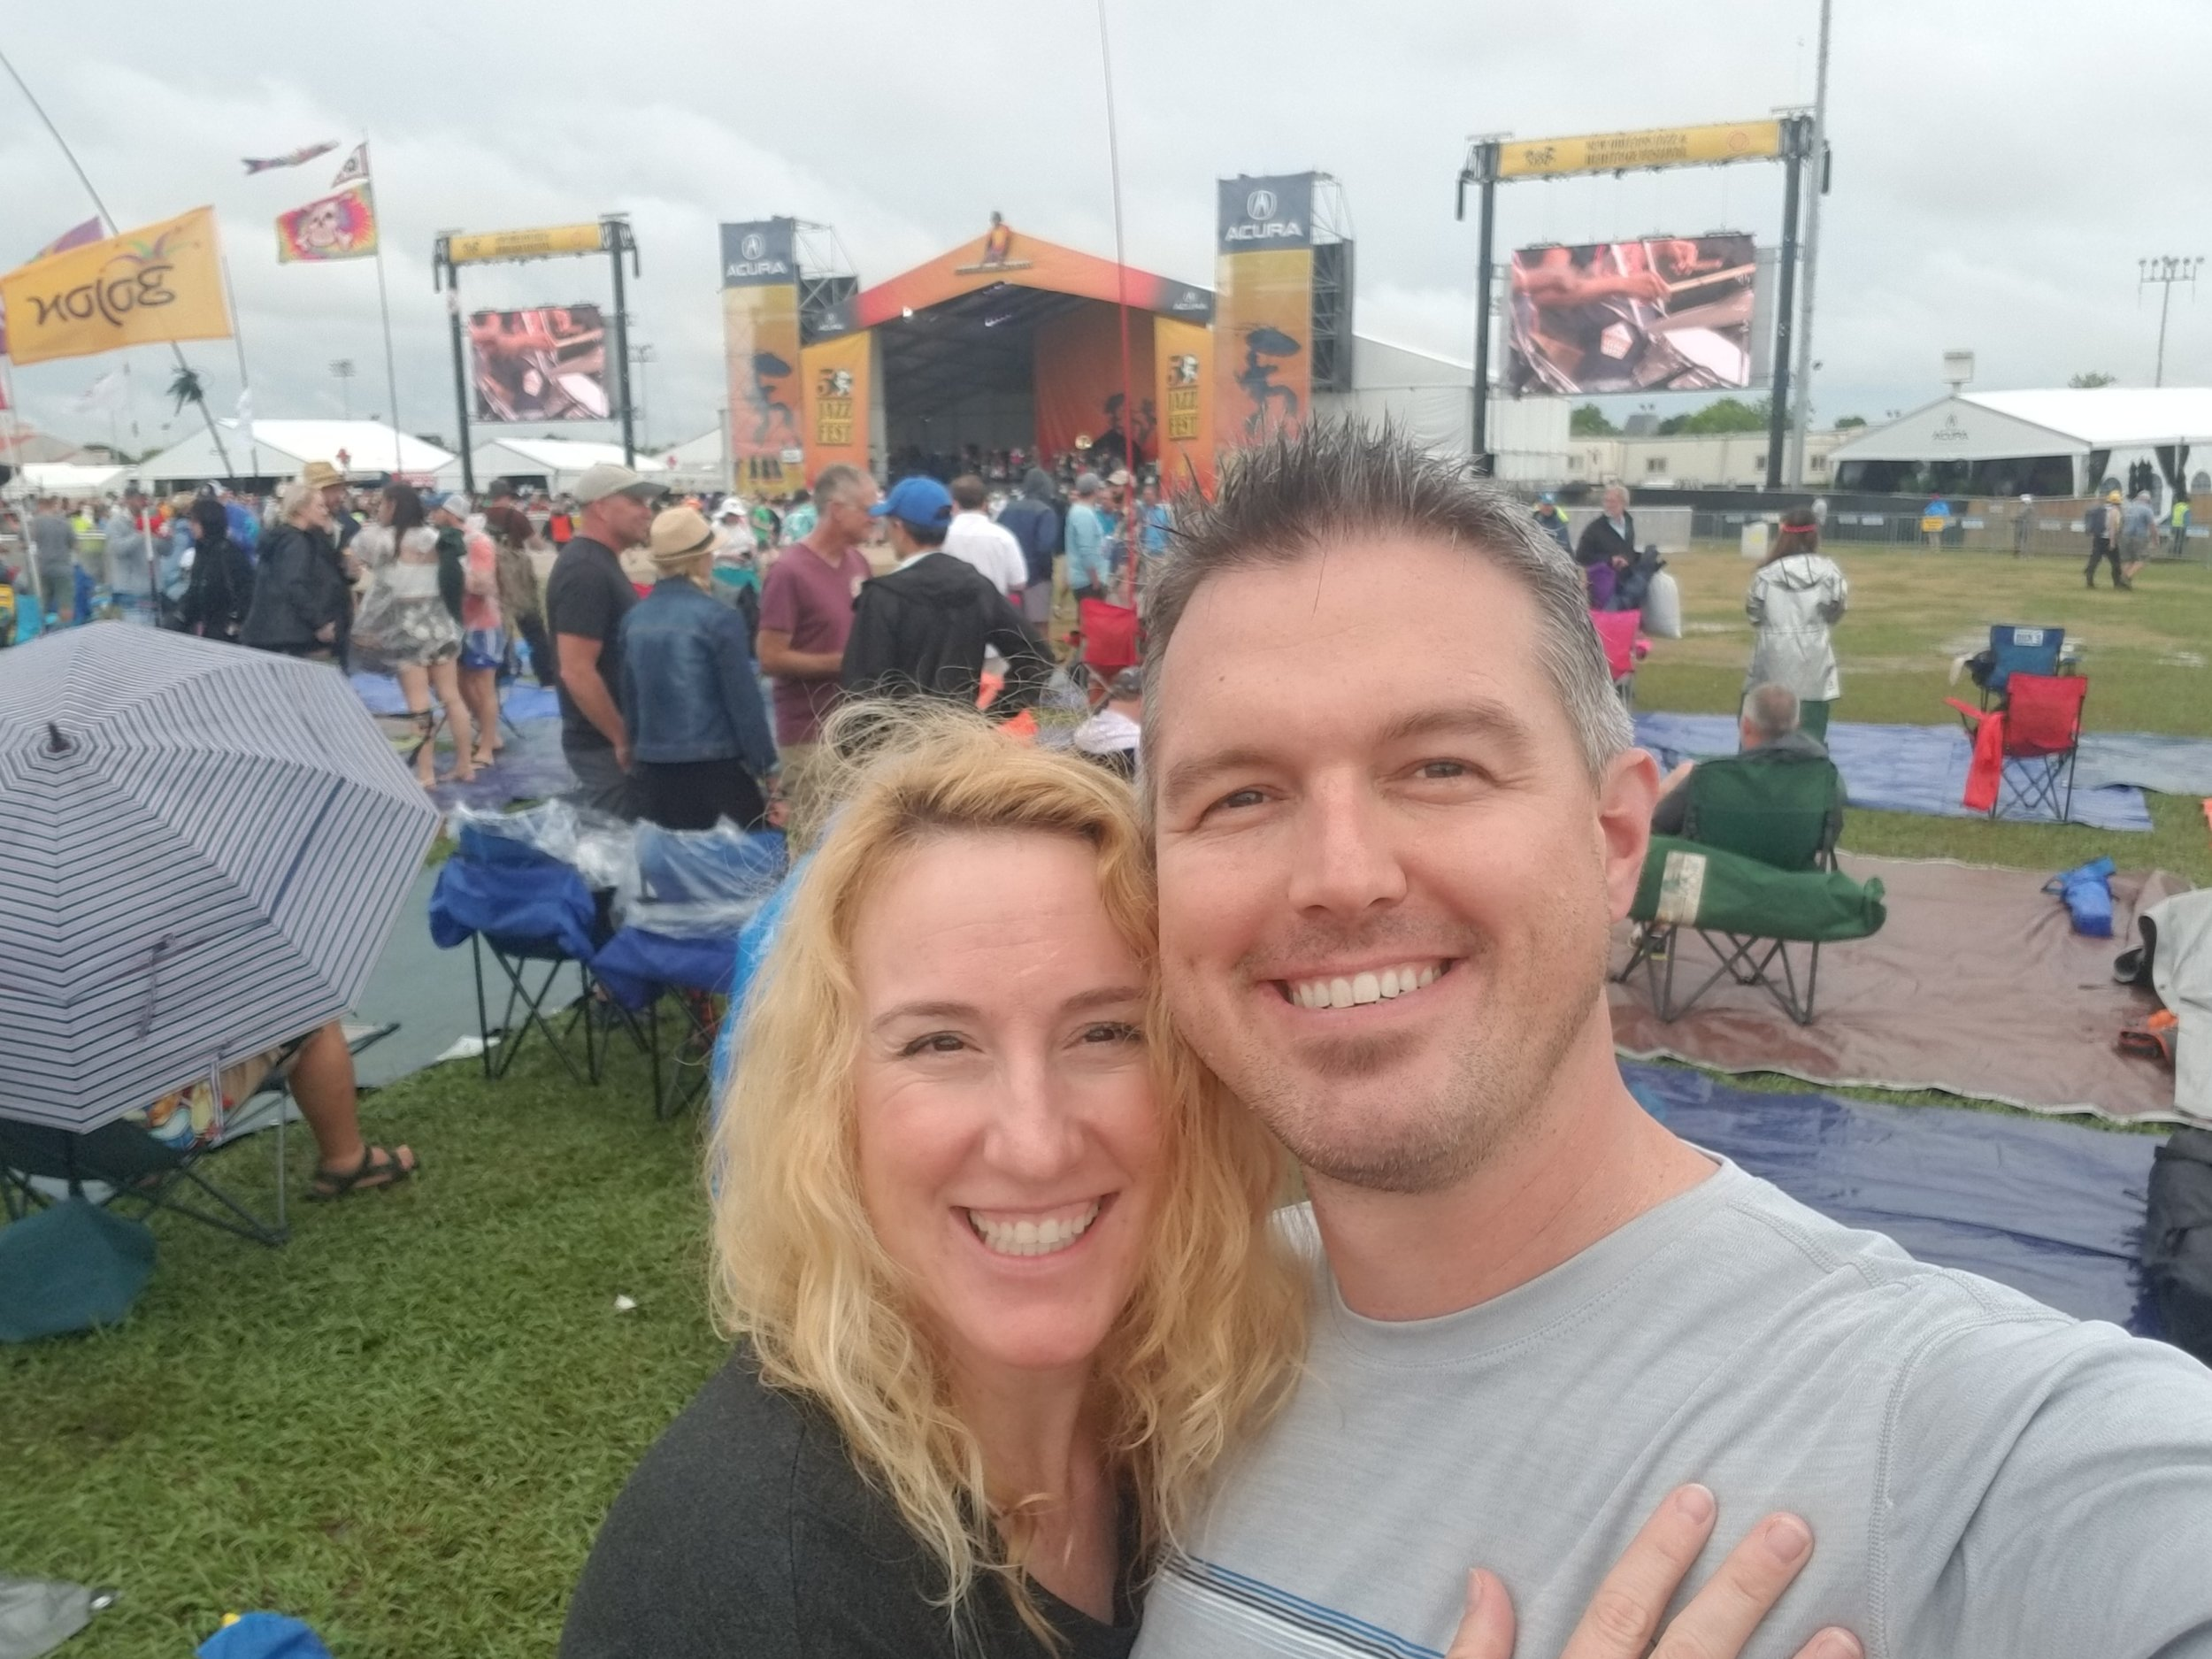 The storm passed and we were in for weekend two of Jazz Fest